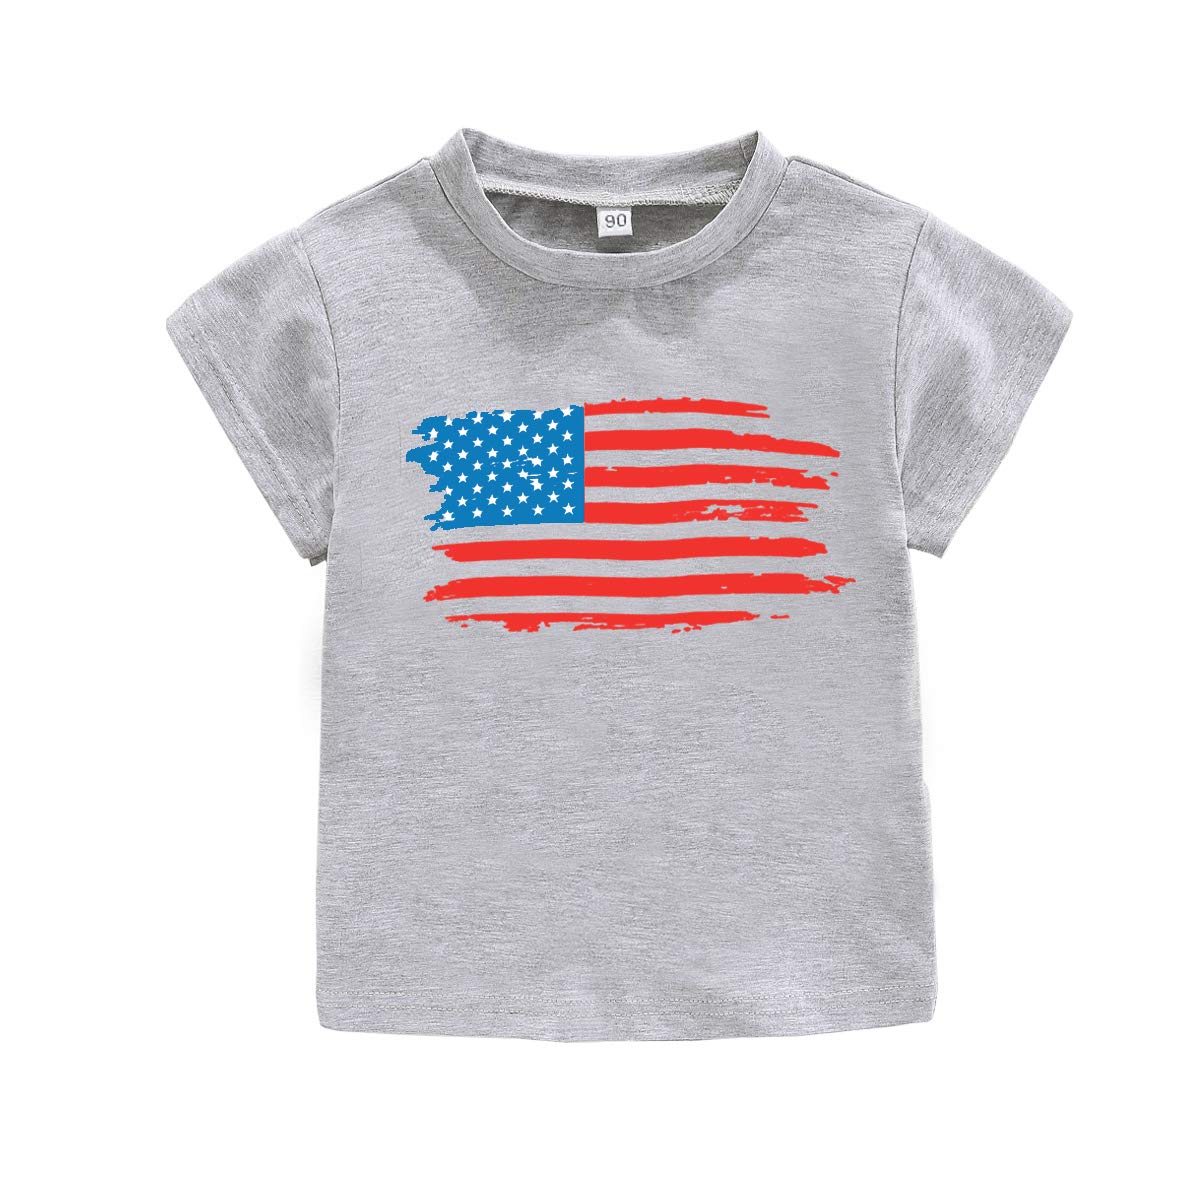 4TH of July Shirt Baby Boys Girls Happy Independence Day tees Stripes Casual Tops Clothing for Little Kids